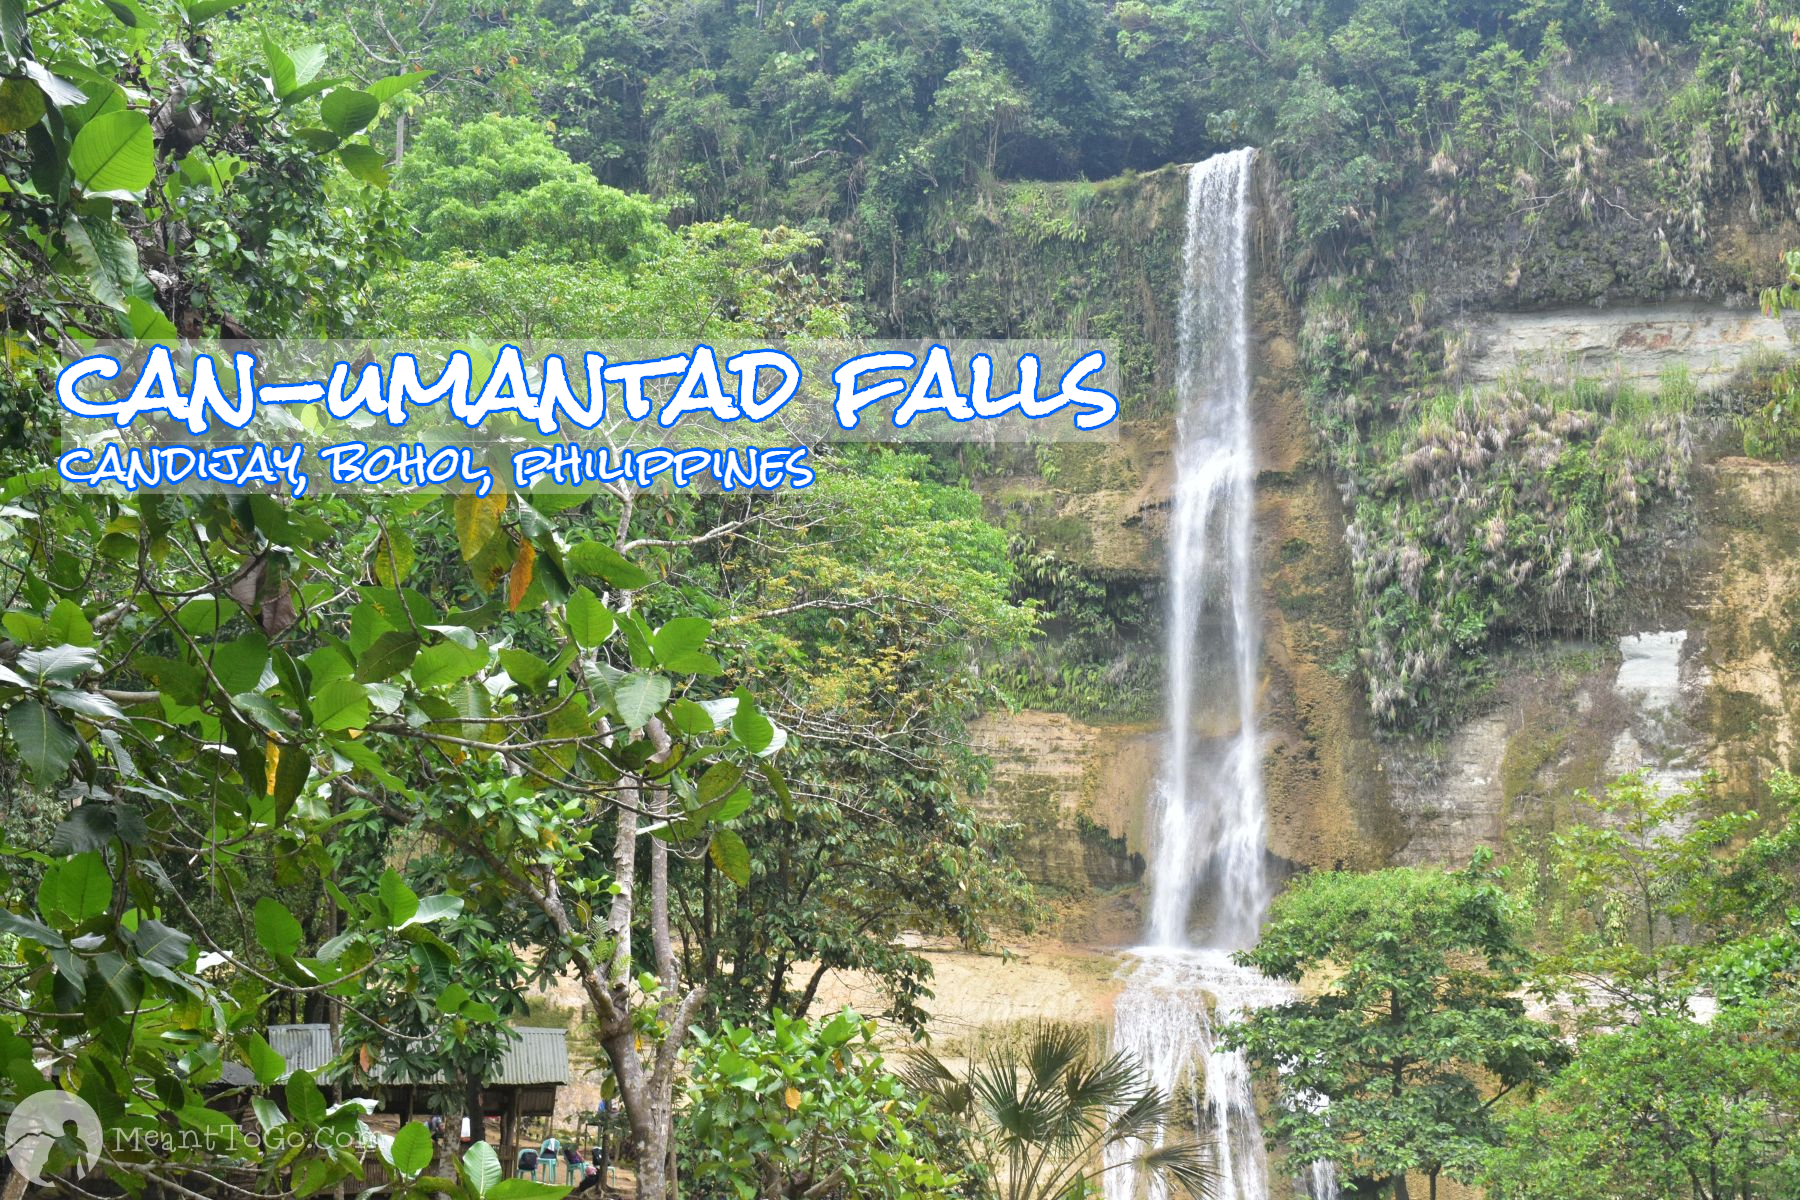 Can-umantad Falls - a waterfall in Candijay, Bohol, Philippines